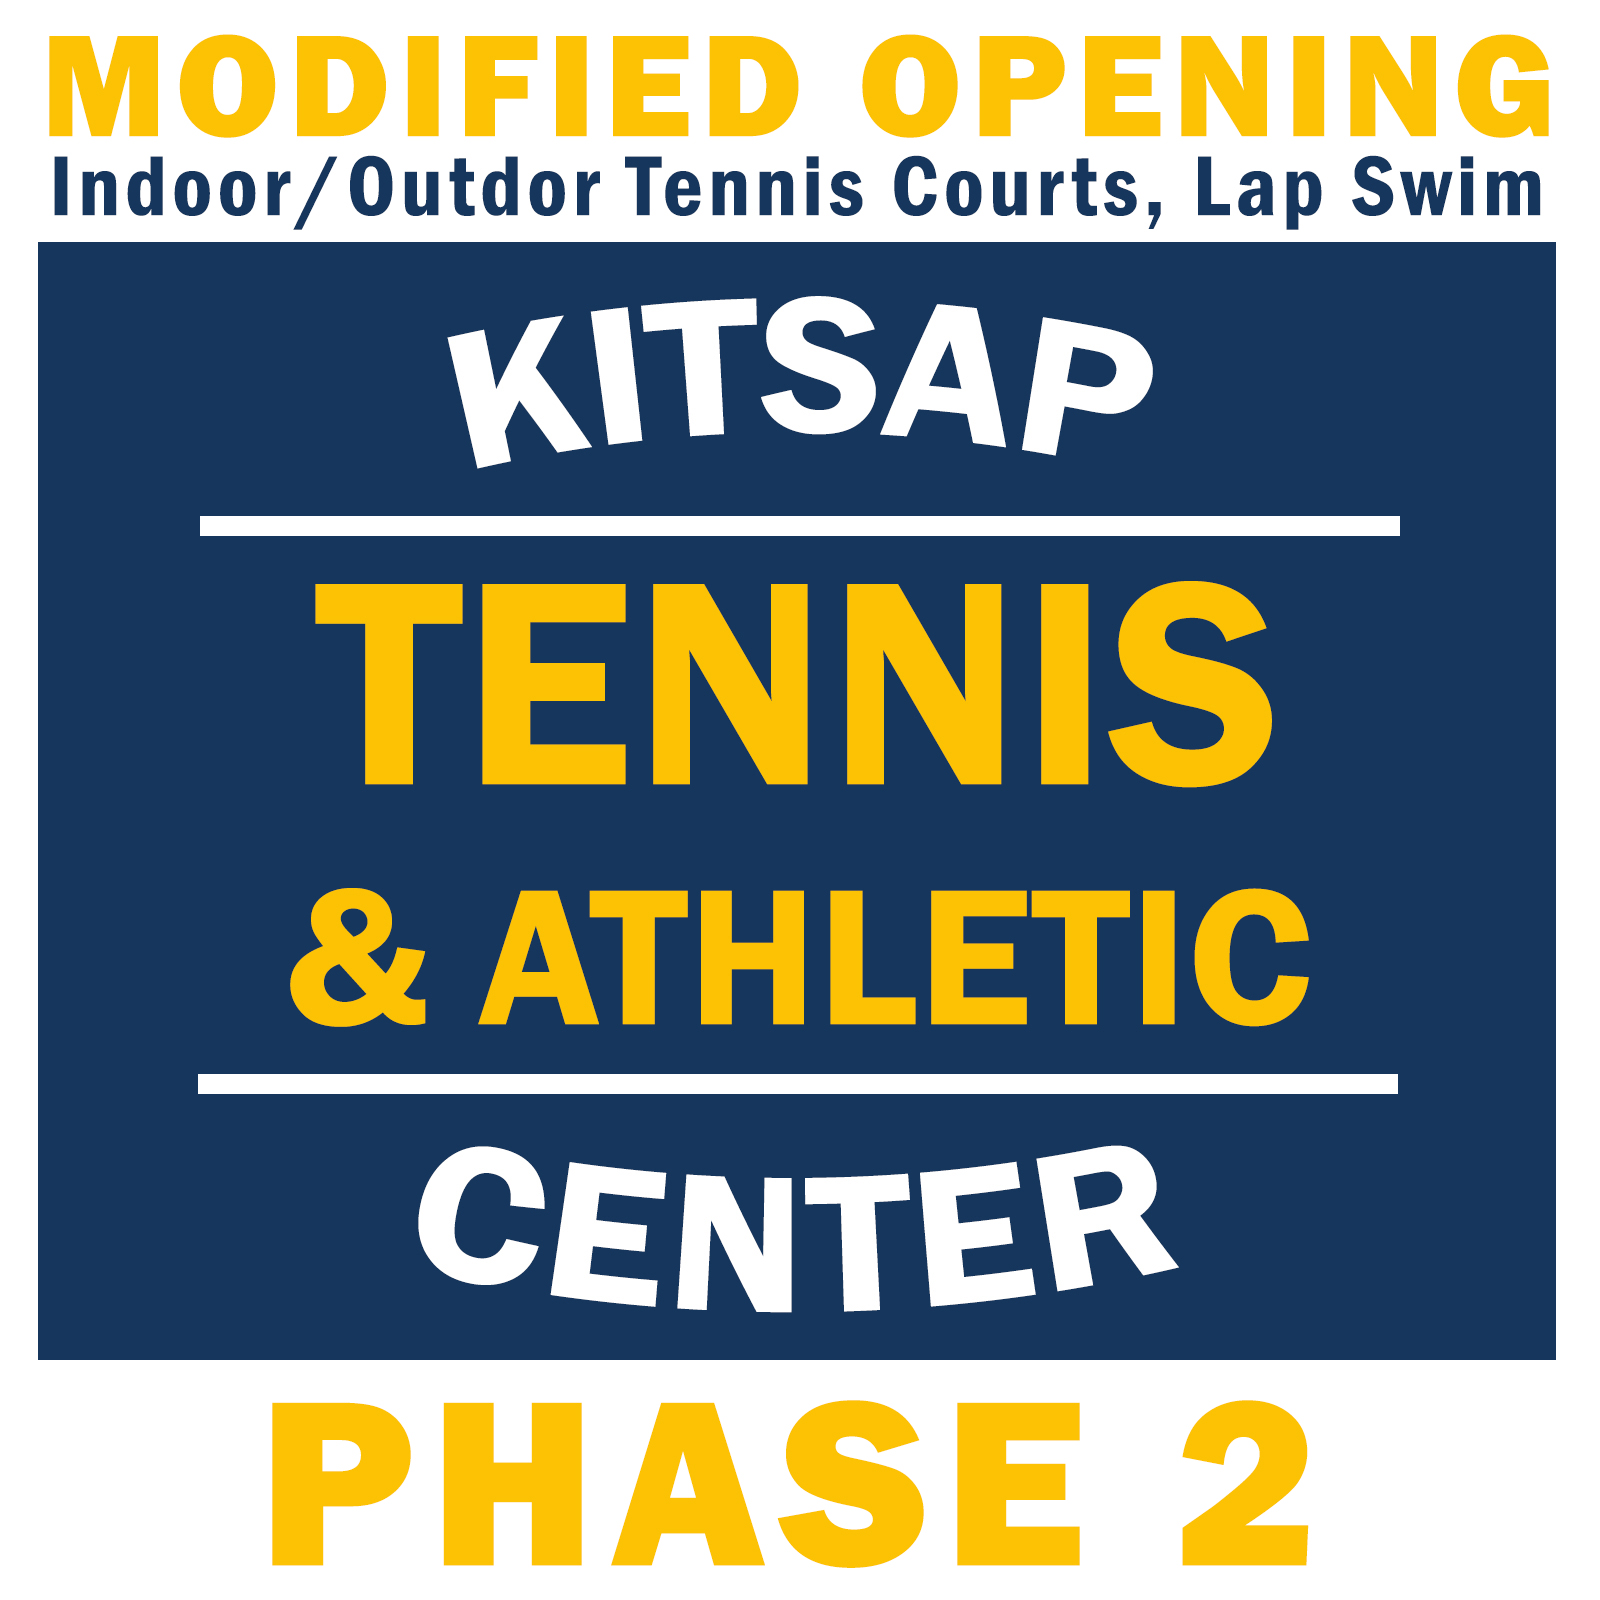 Kitsap Tennis and Athletic Center Modified Opening Phase 2